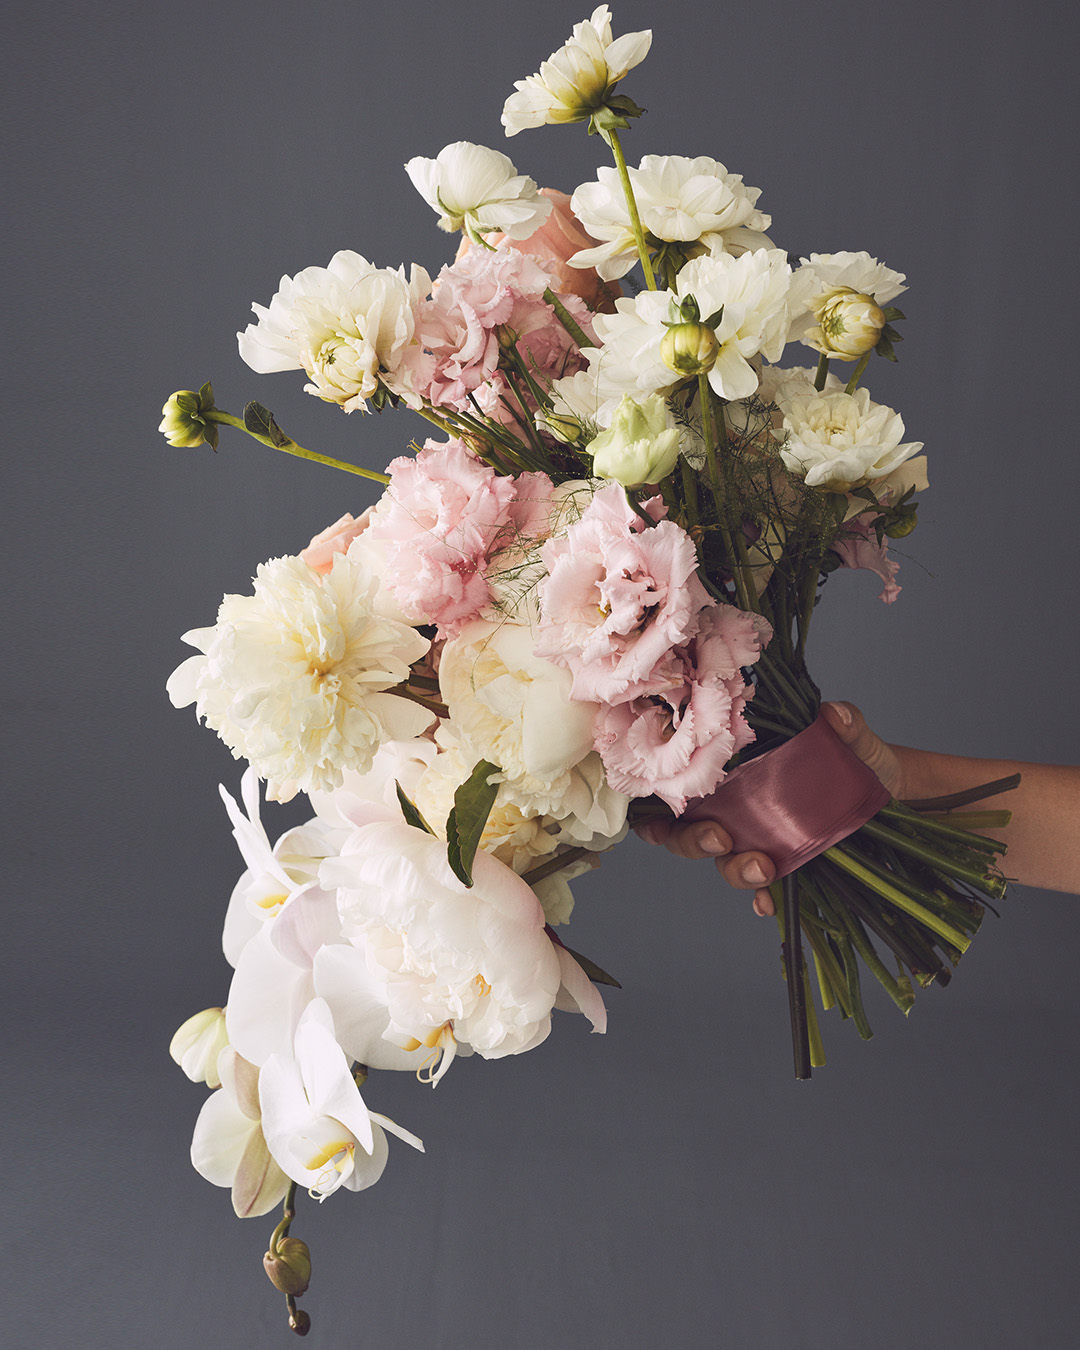 Affordable Wedding Flowers That Look Expensive David S Bridal Blog